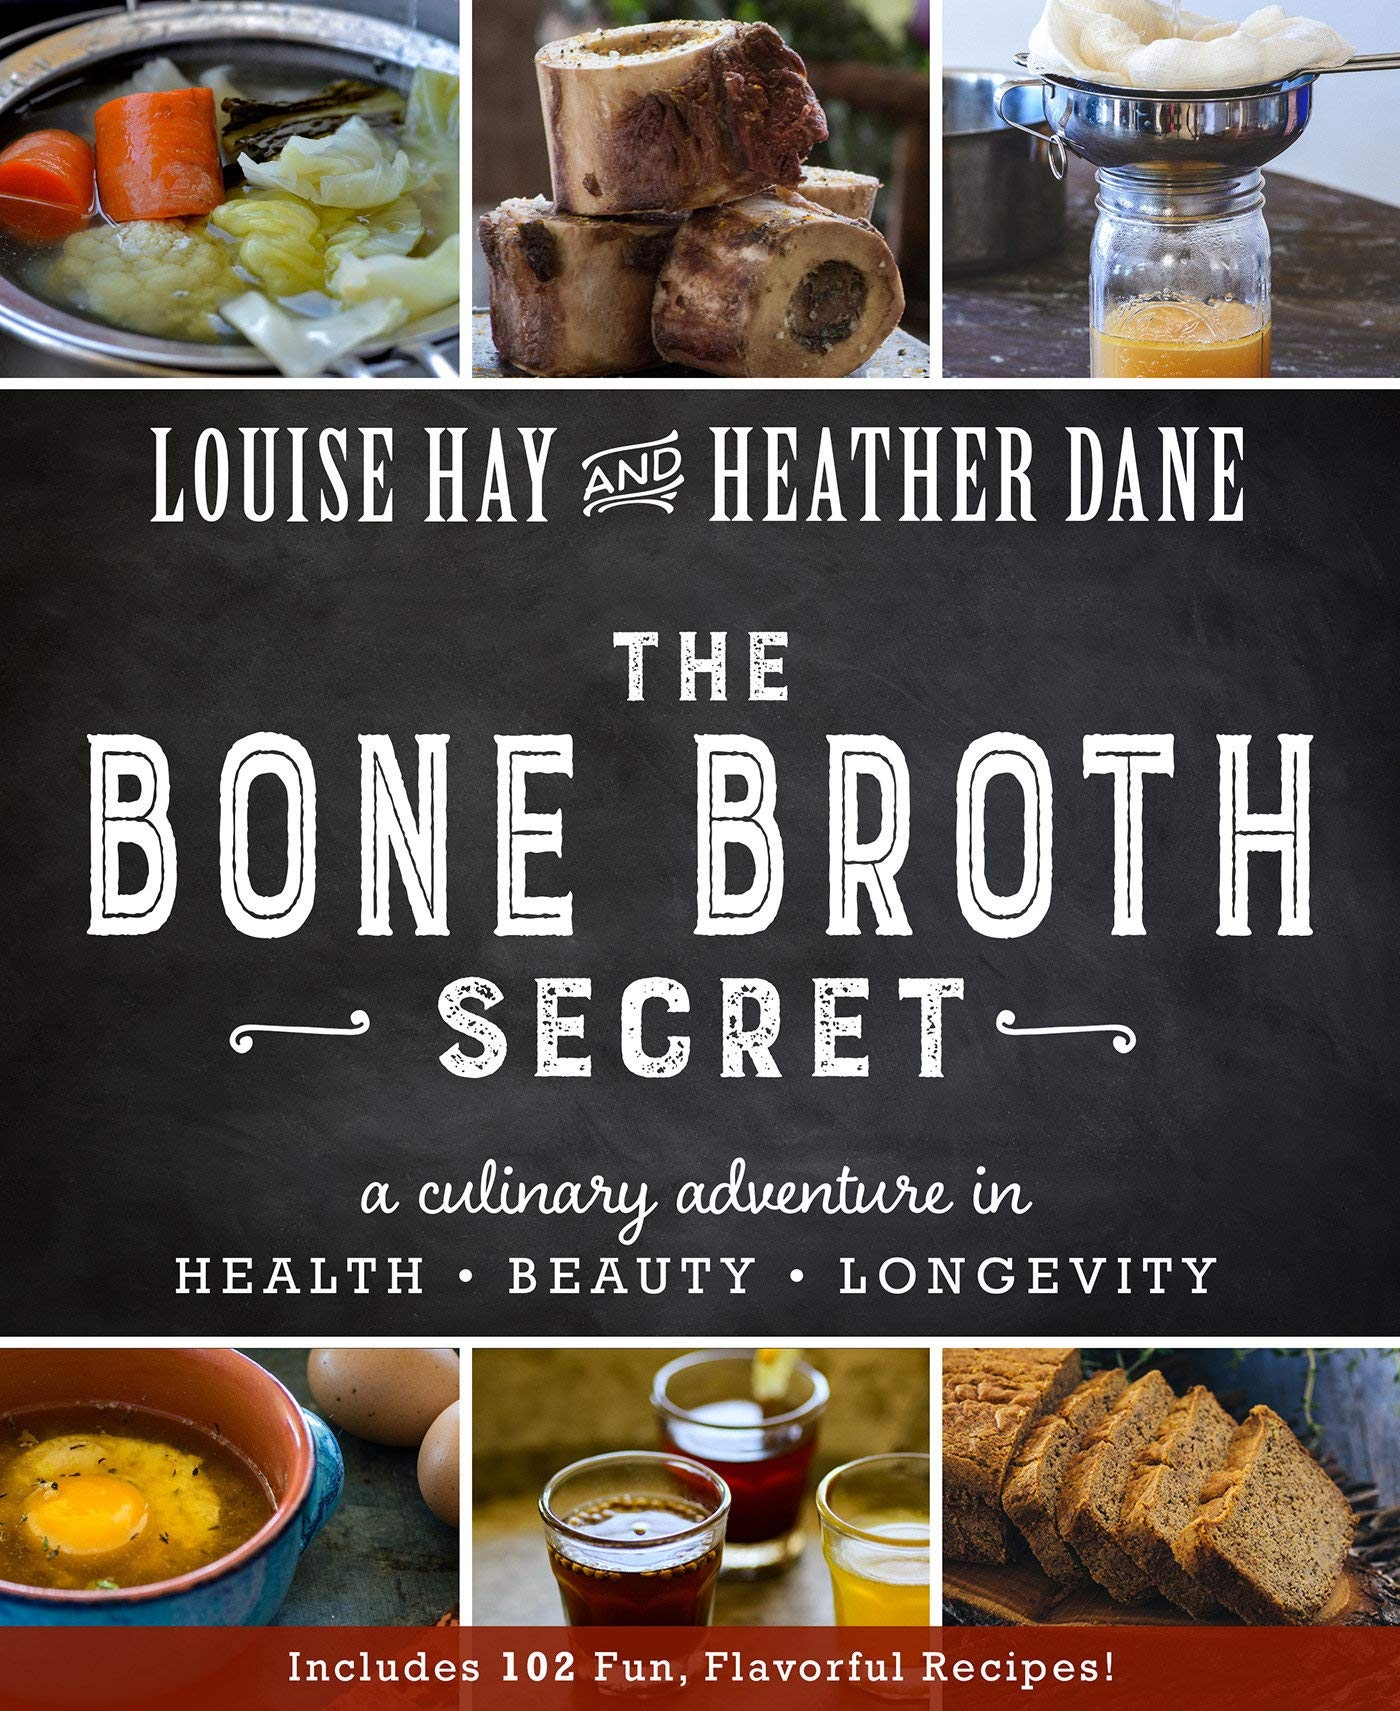 the bone broth secret louise hay heather dane